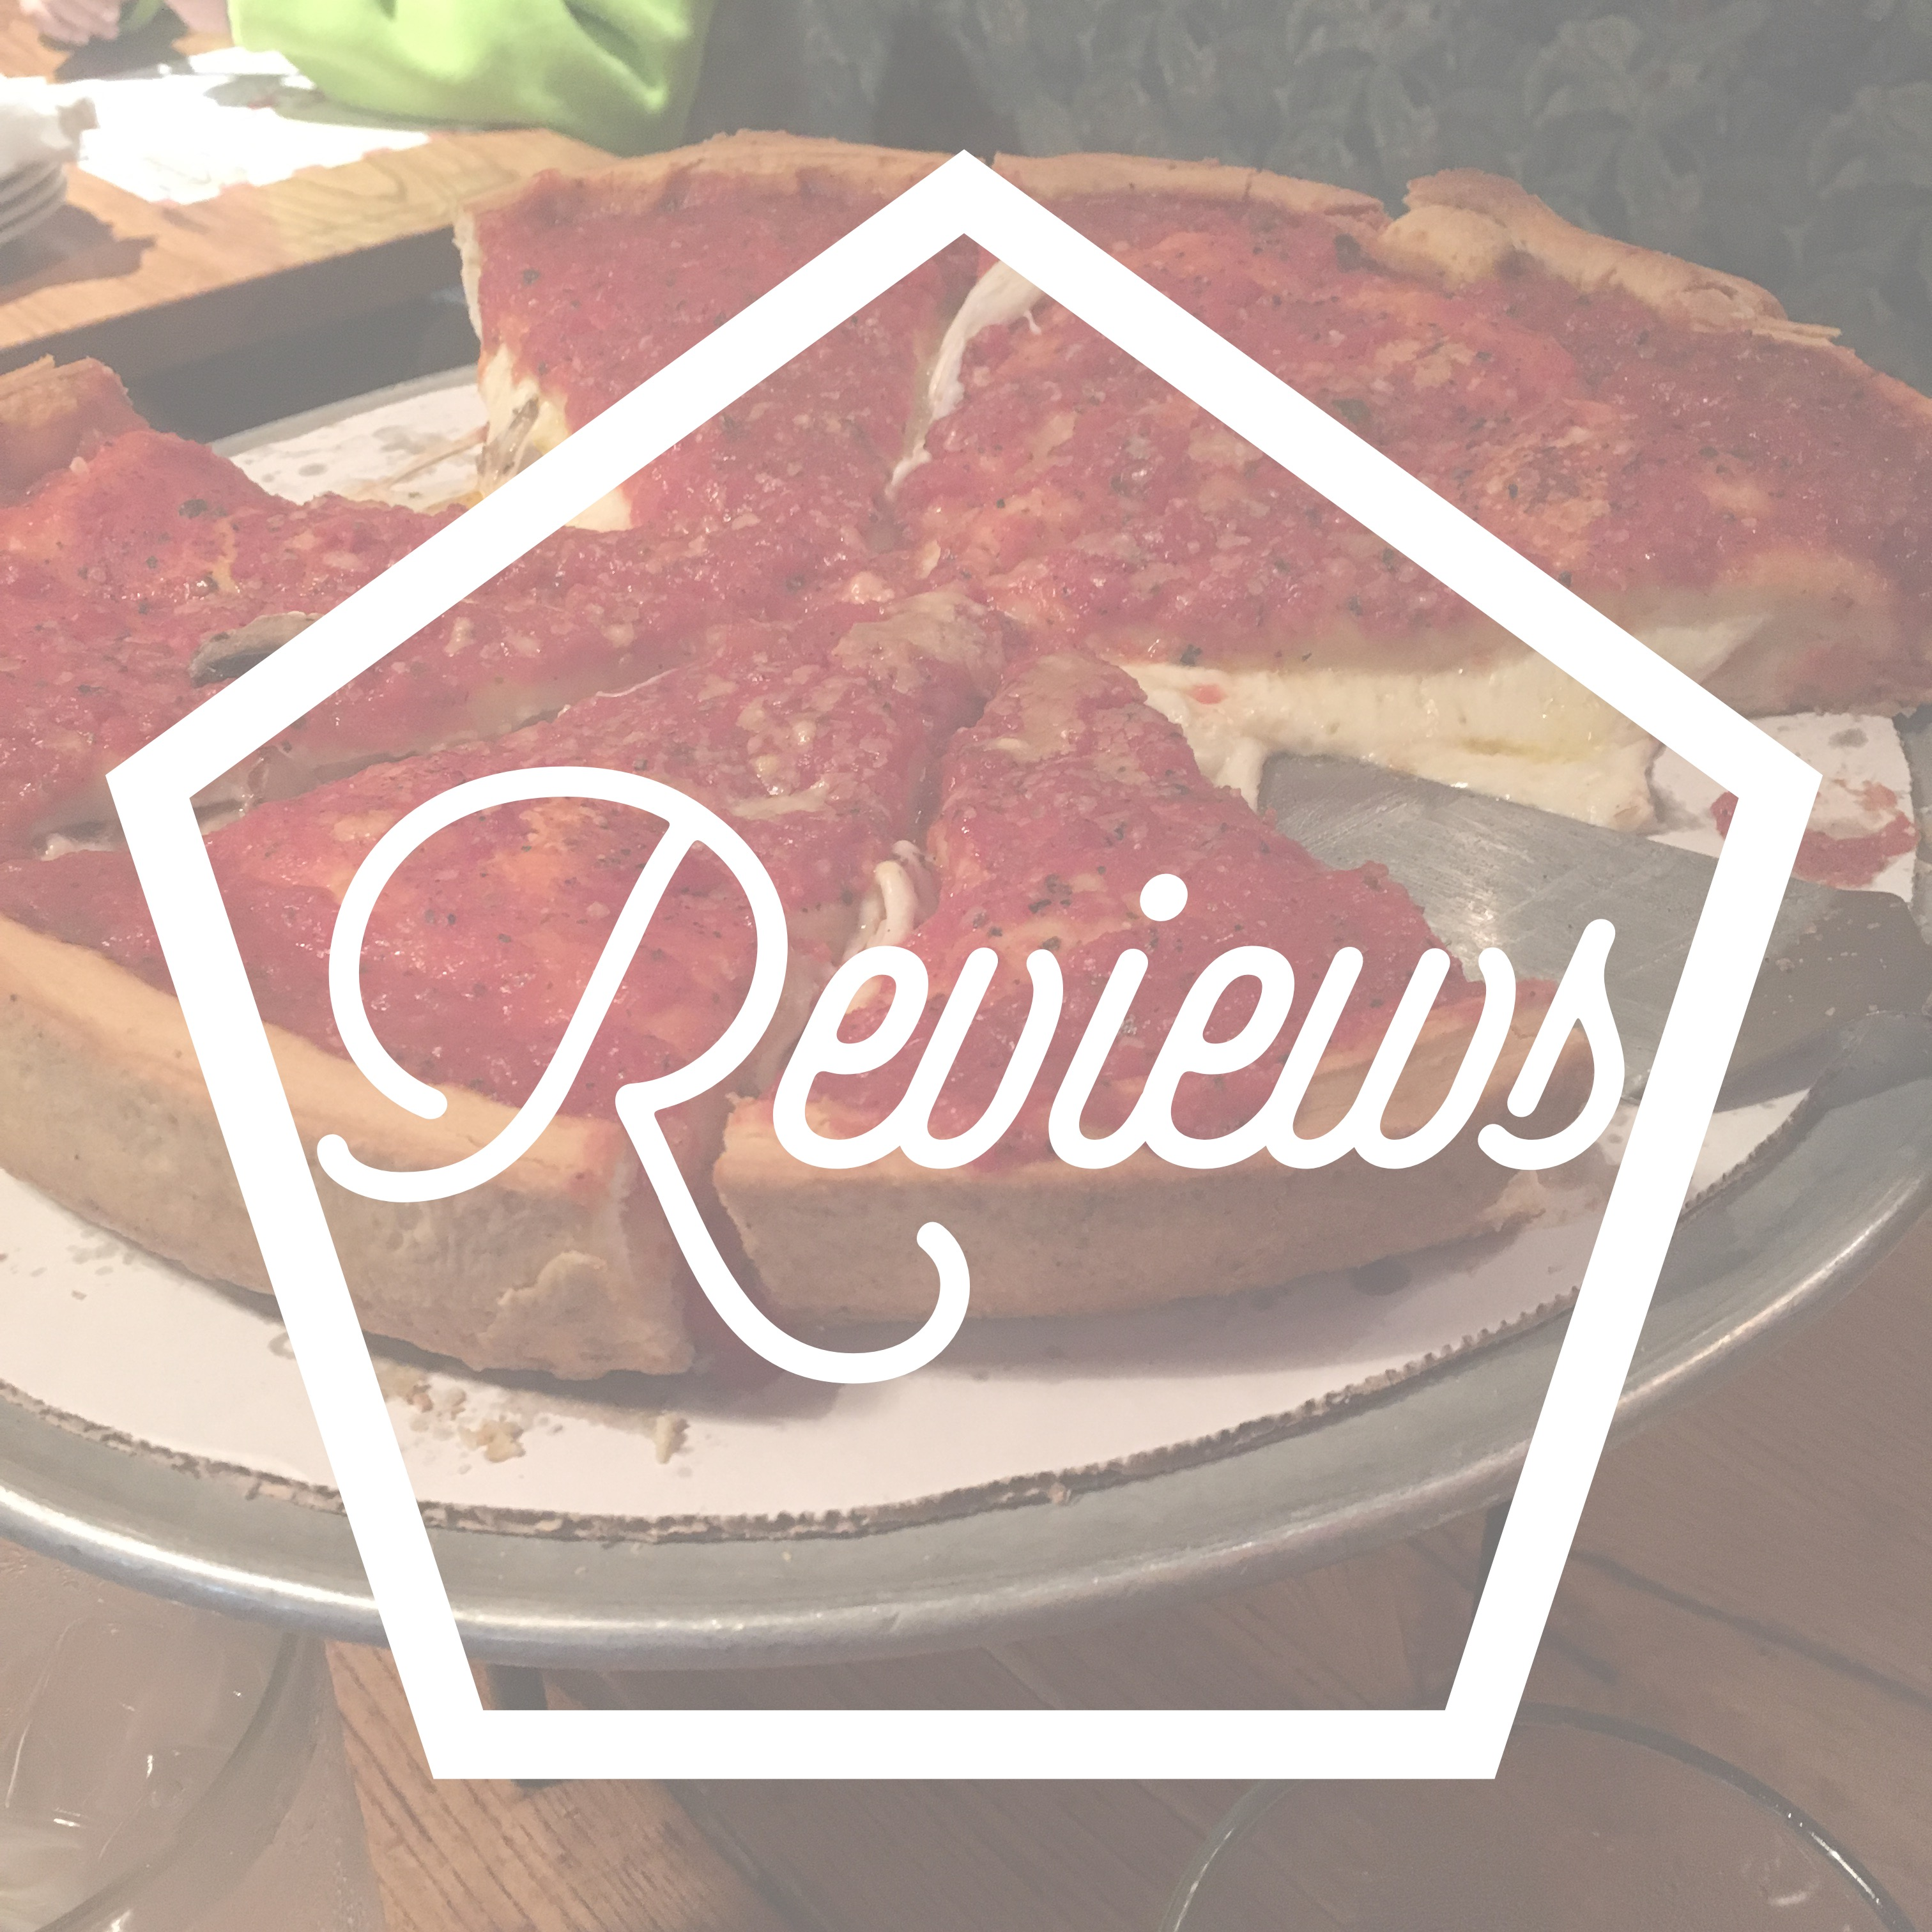 Check out our reviews page!